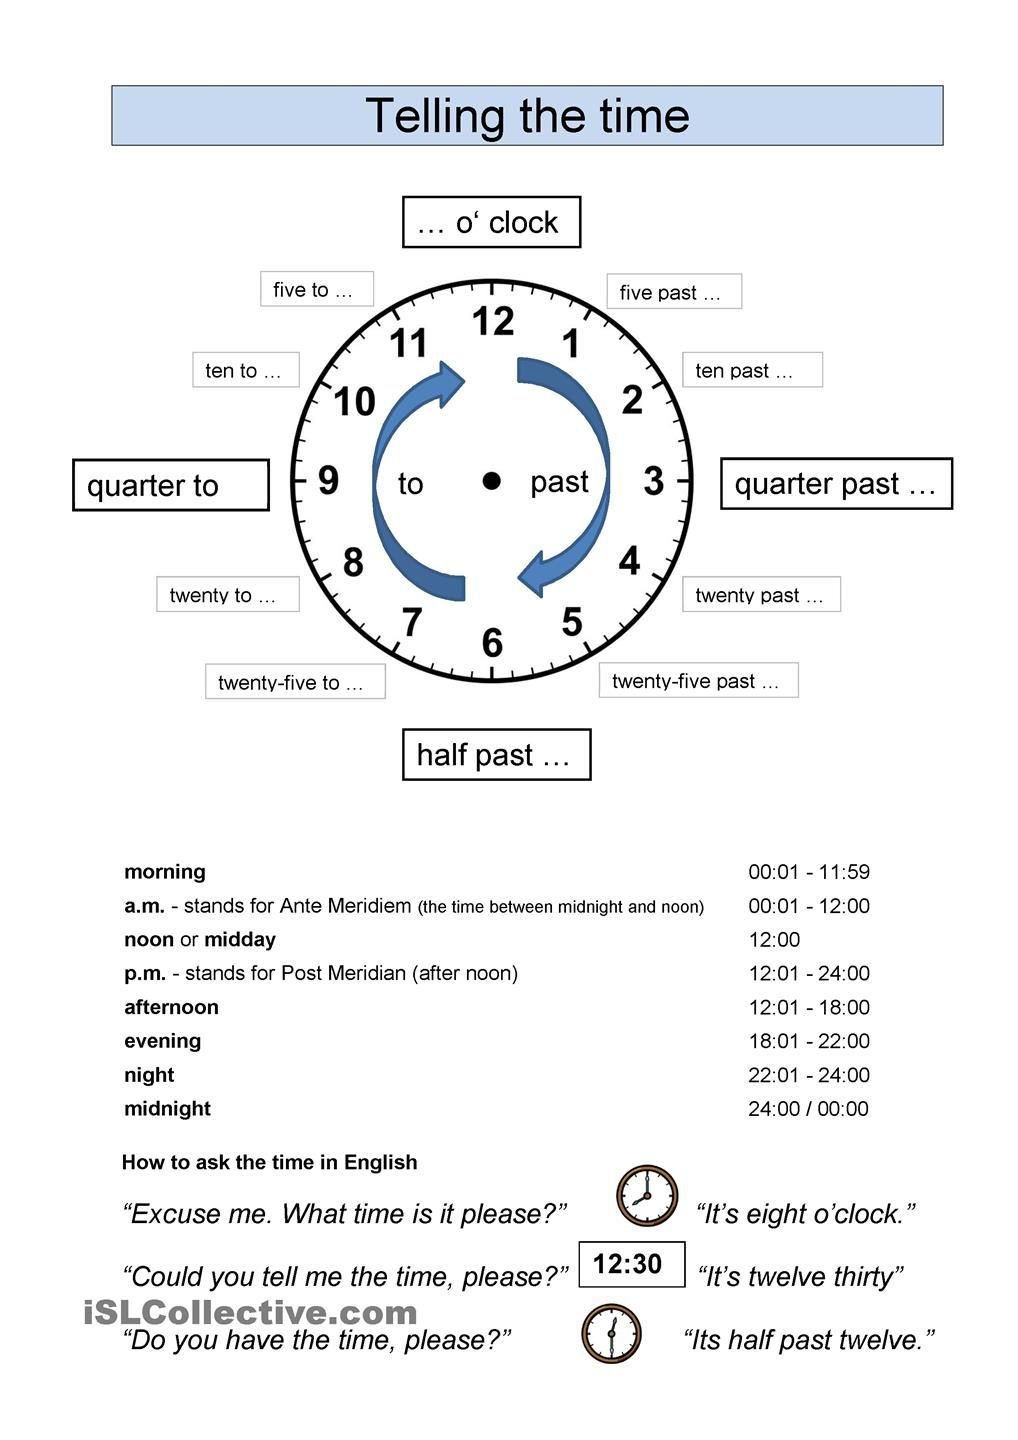 telling the time | English 4th grade | Pinterest | English ...